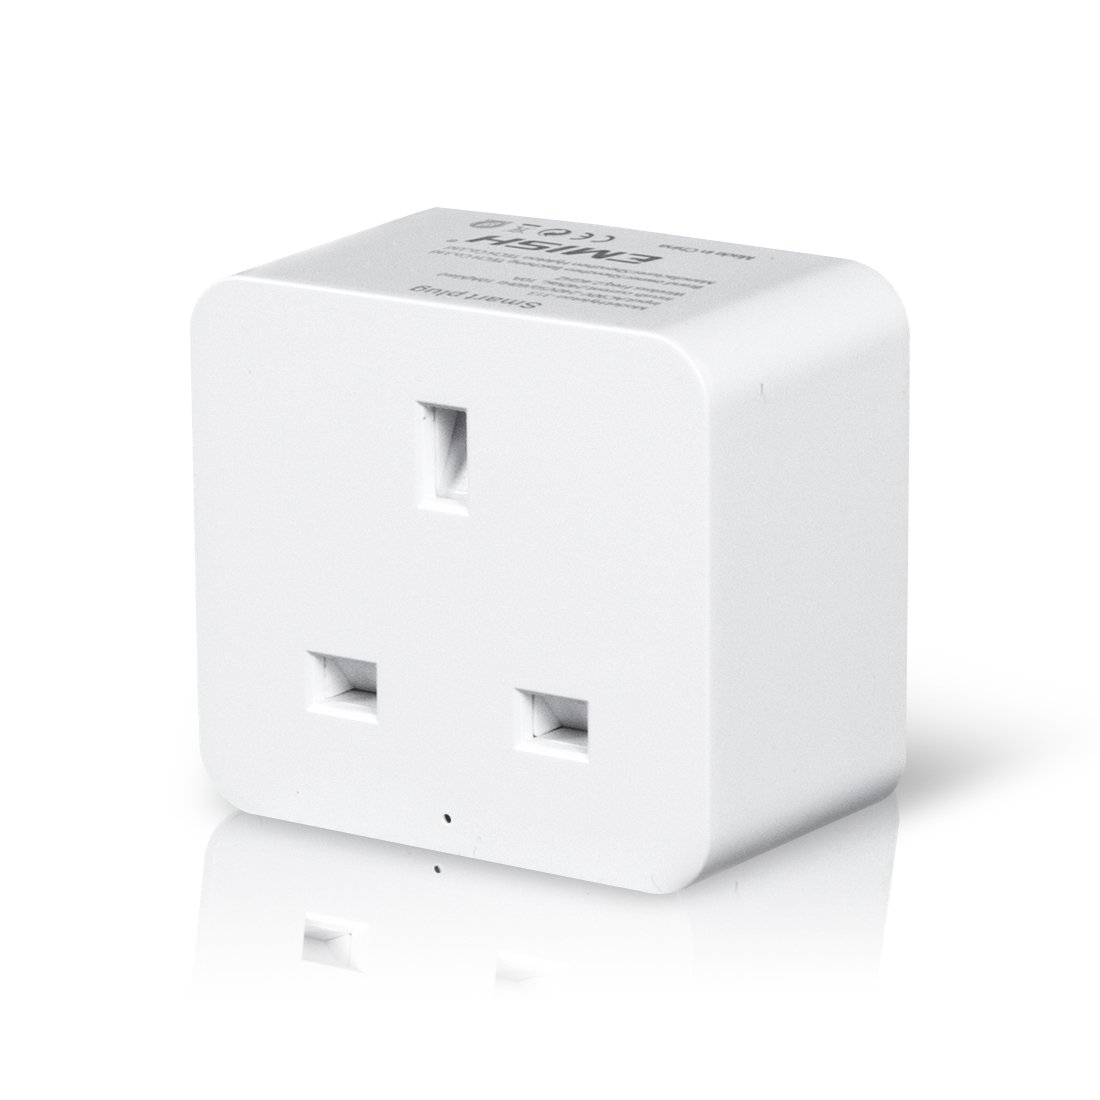 WiFi Smart Plug, Hantwin Mini Smart Socket Compatible with Alexa Google Home and IFTTT, Timer Switch Plug Control Your Smart Home Devices from Anywhere